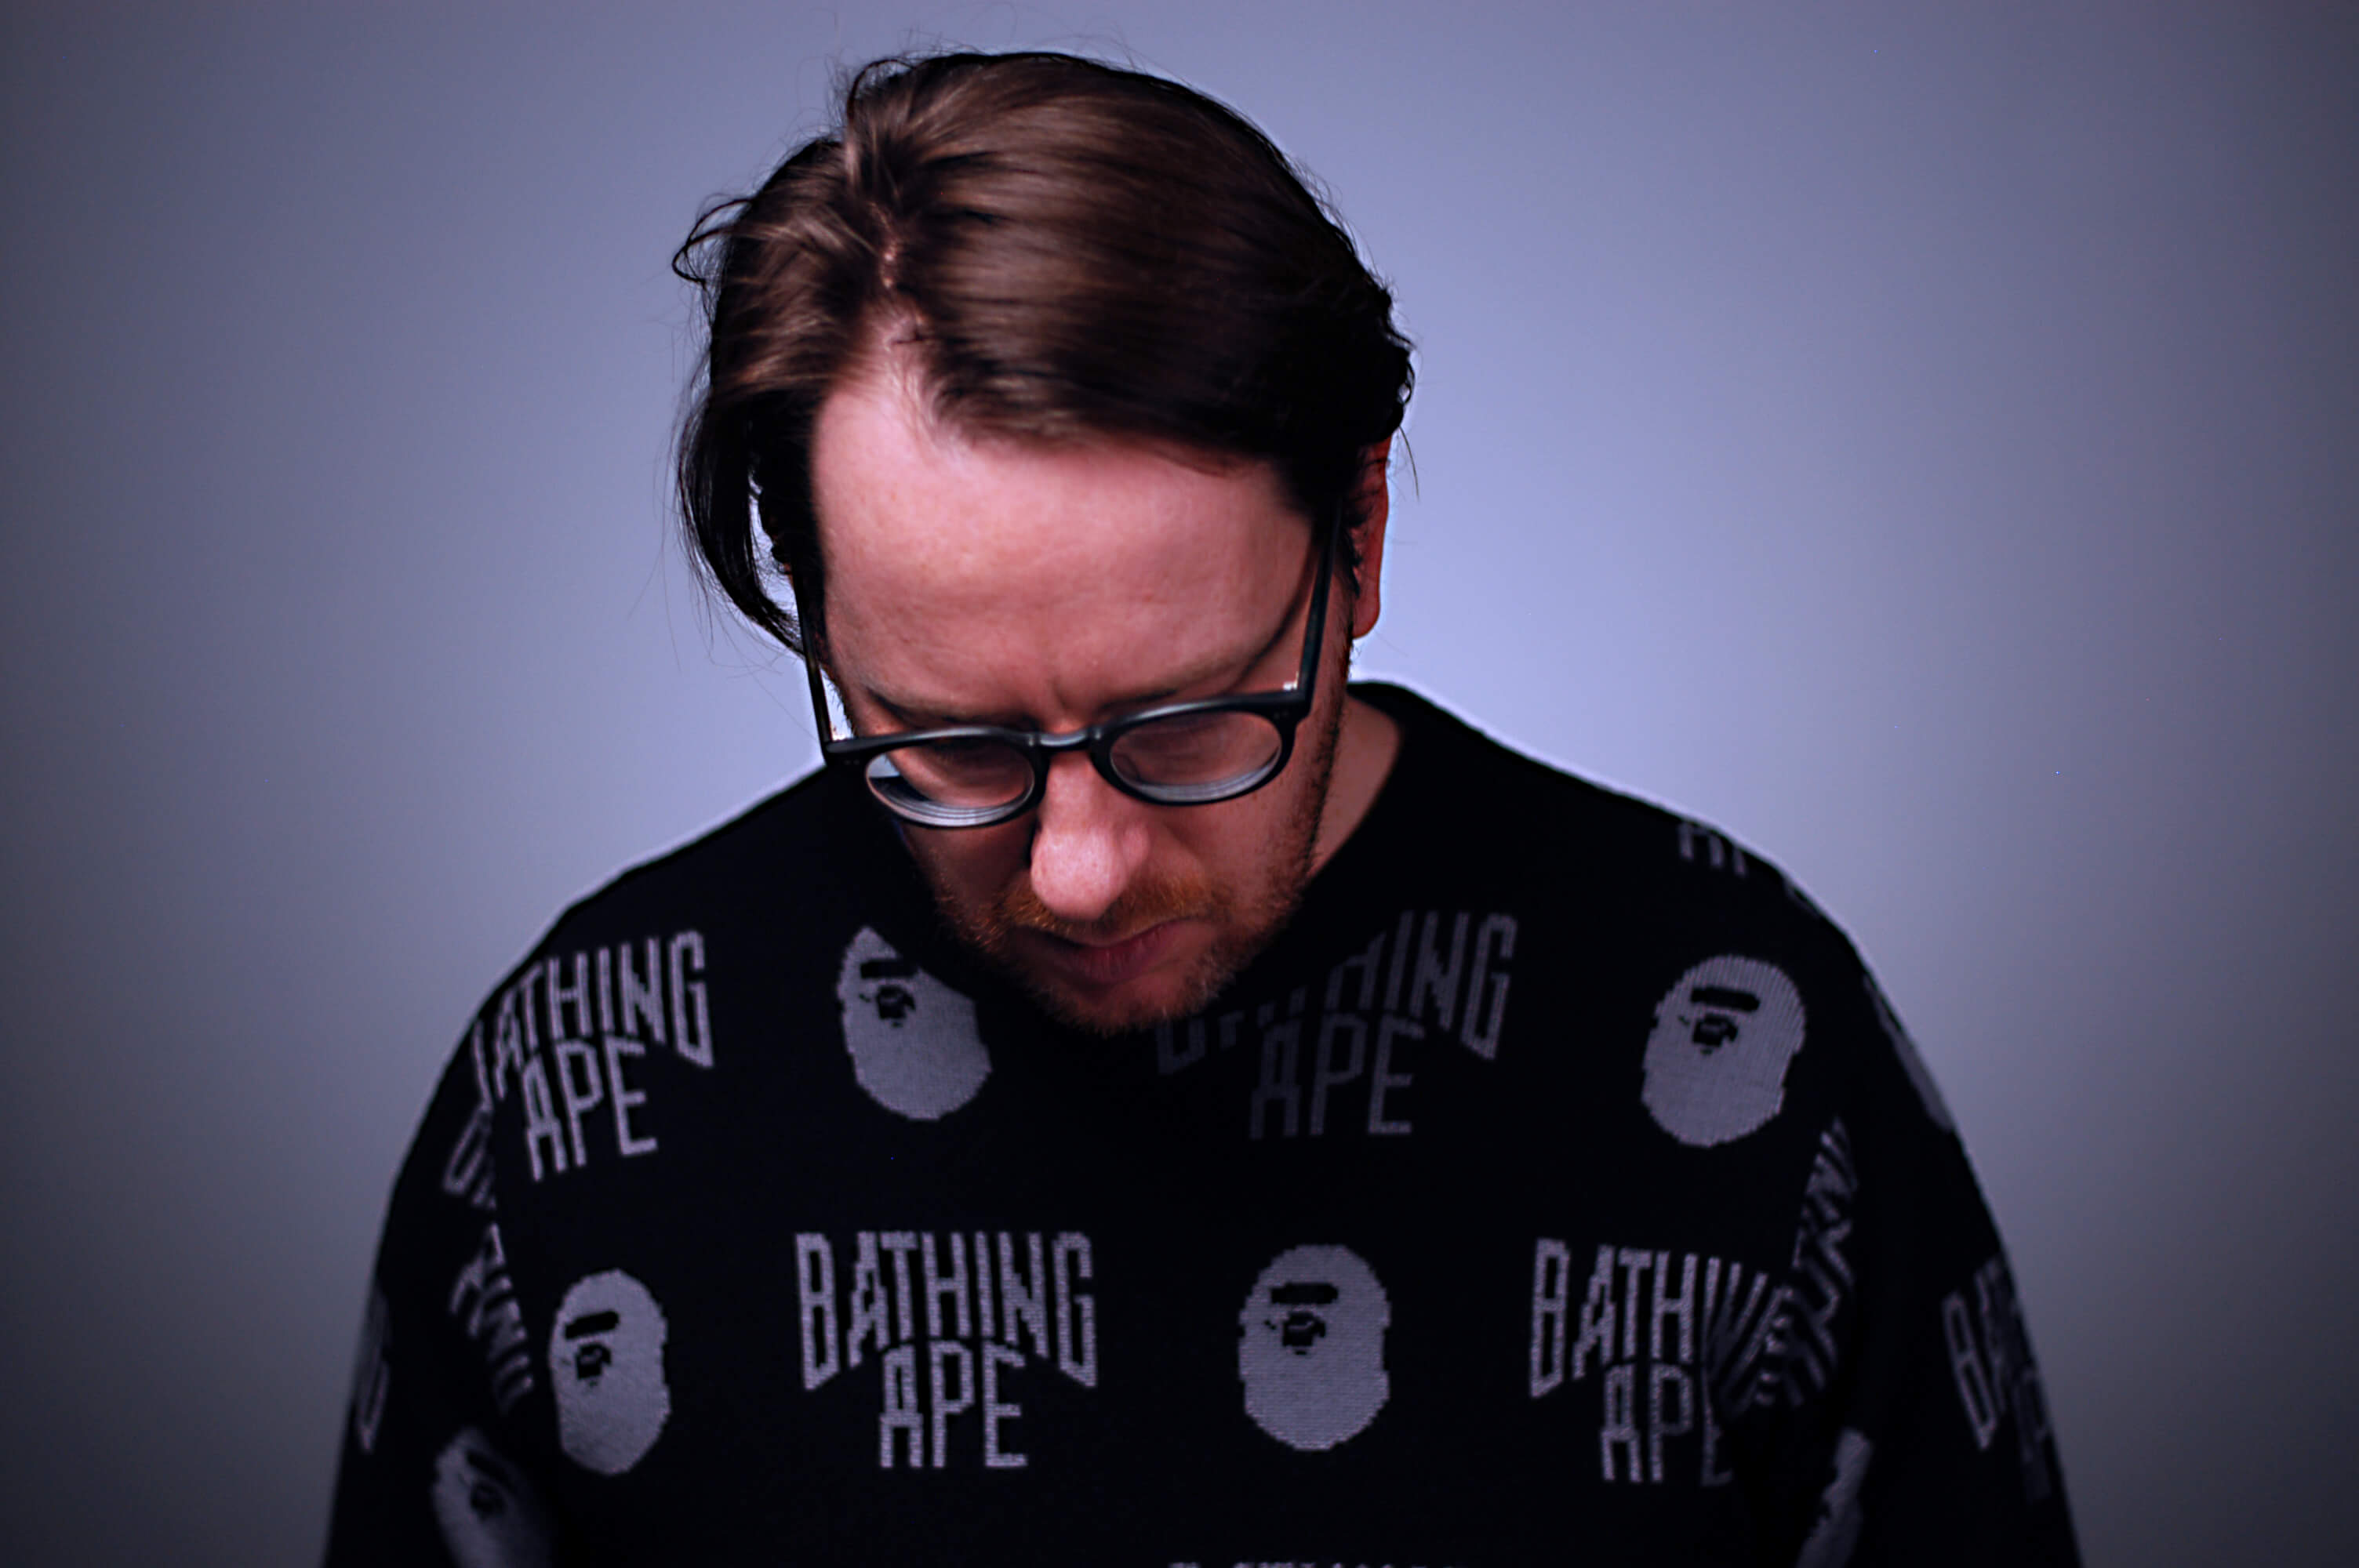 Composer Nicolas Bernier staring at the floor in a cool bathing ape t shirt.